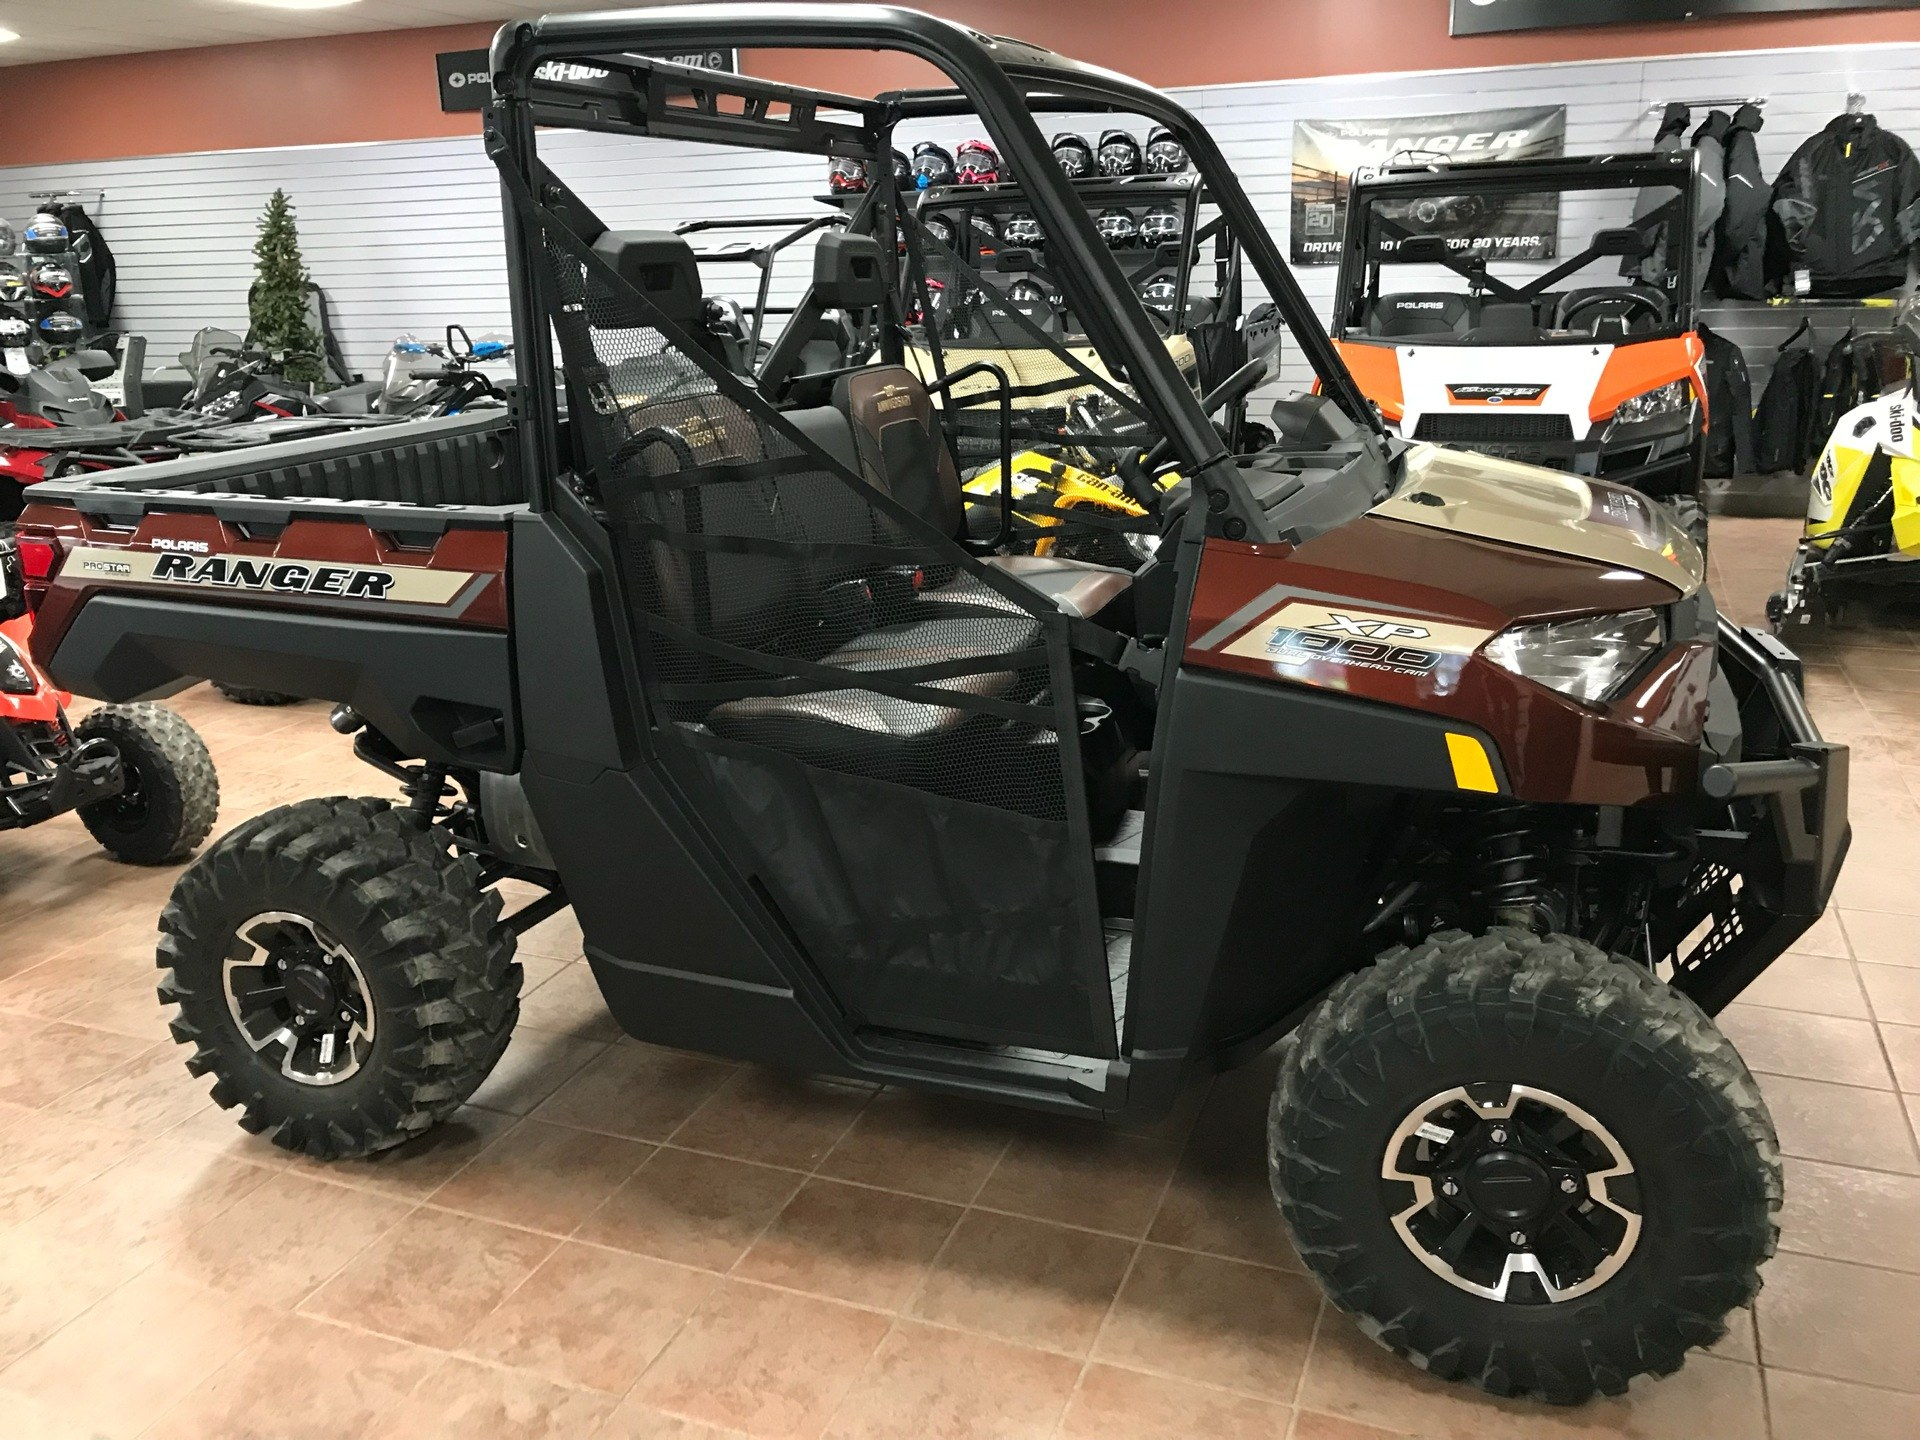 2019 Polaris Ranger XP 1000 EPS 20th Anniversary Limited Editio 1